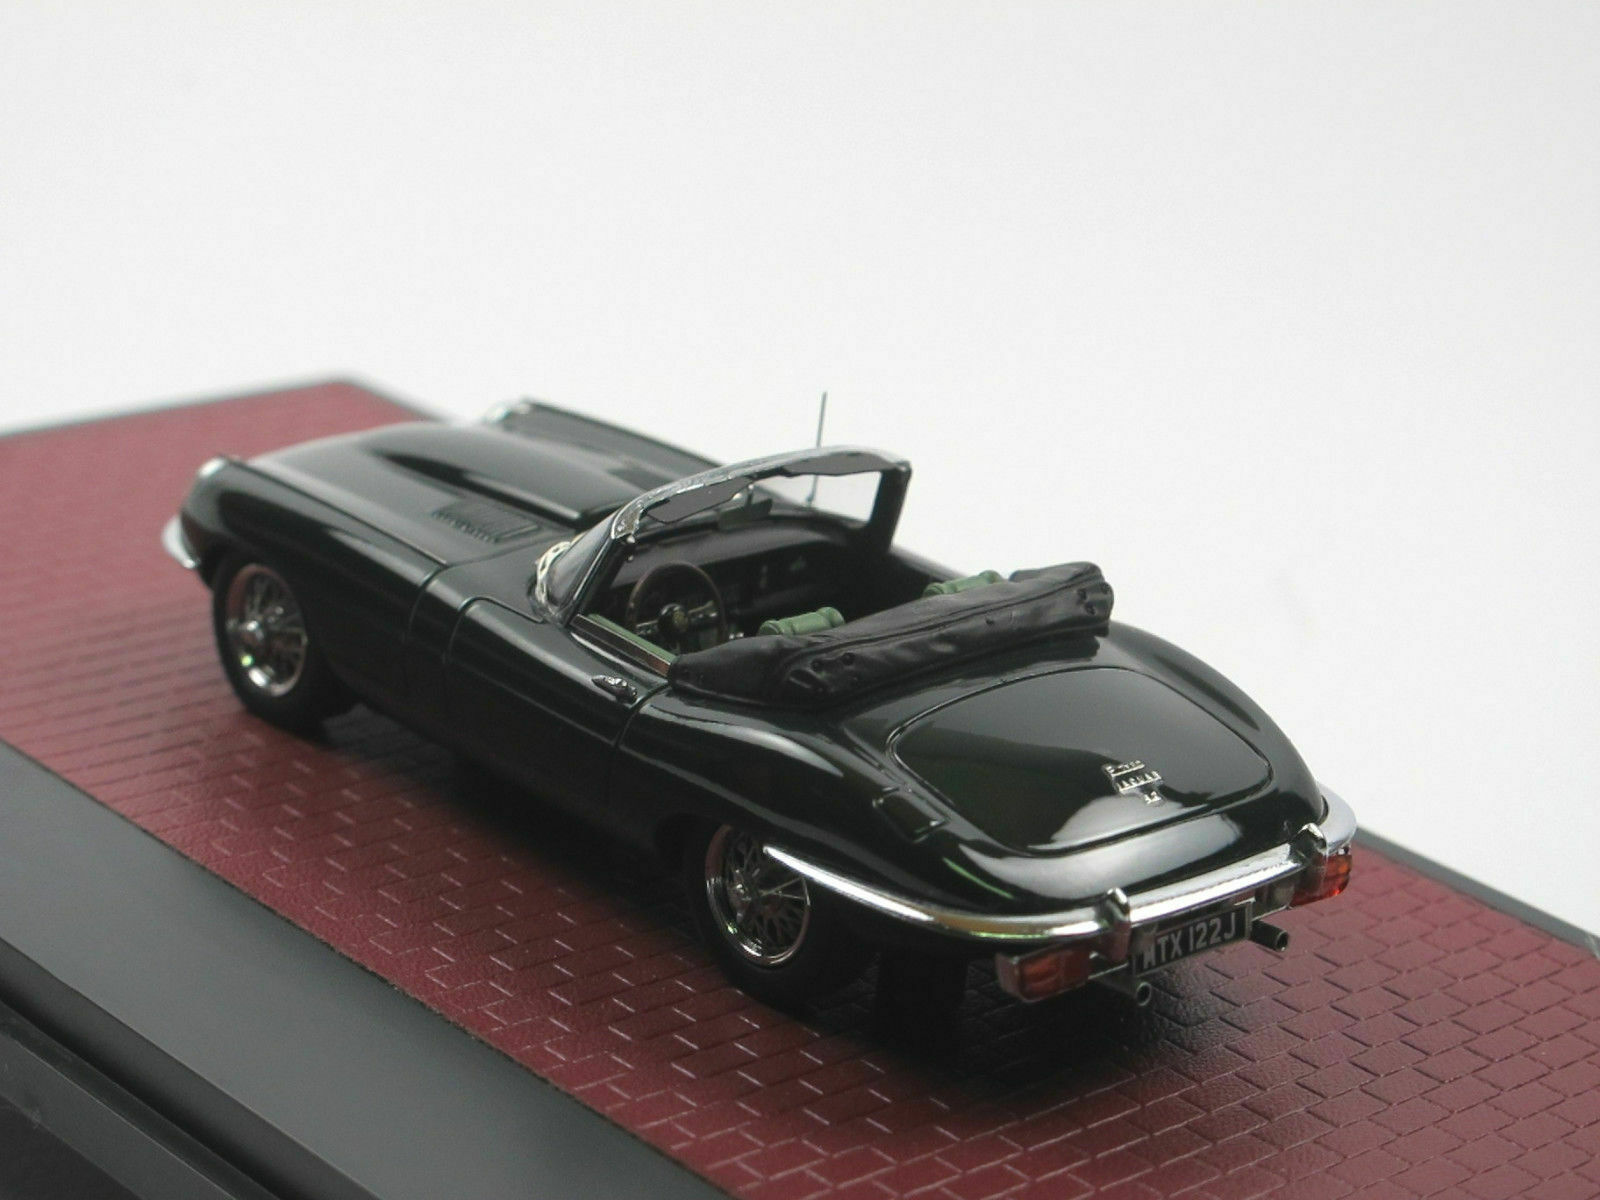 JAGUAR E TYPE 3.2 SERIES II ROADSTER verde 1970 MATRIX MX11001-042 1 43 RESINE